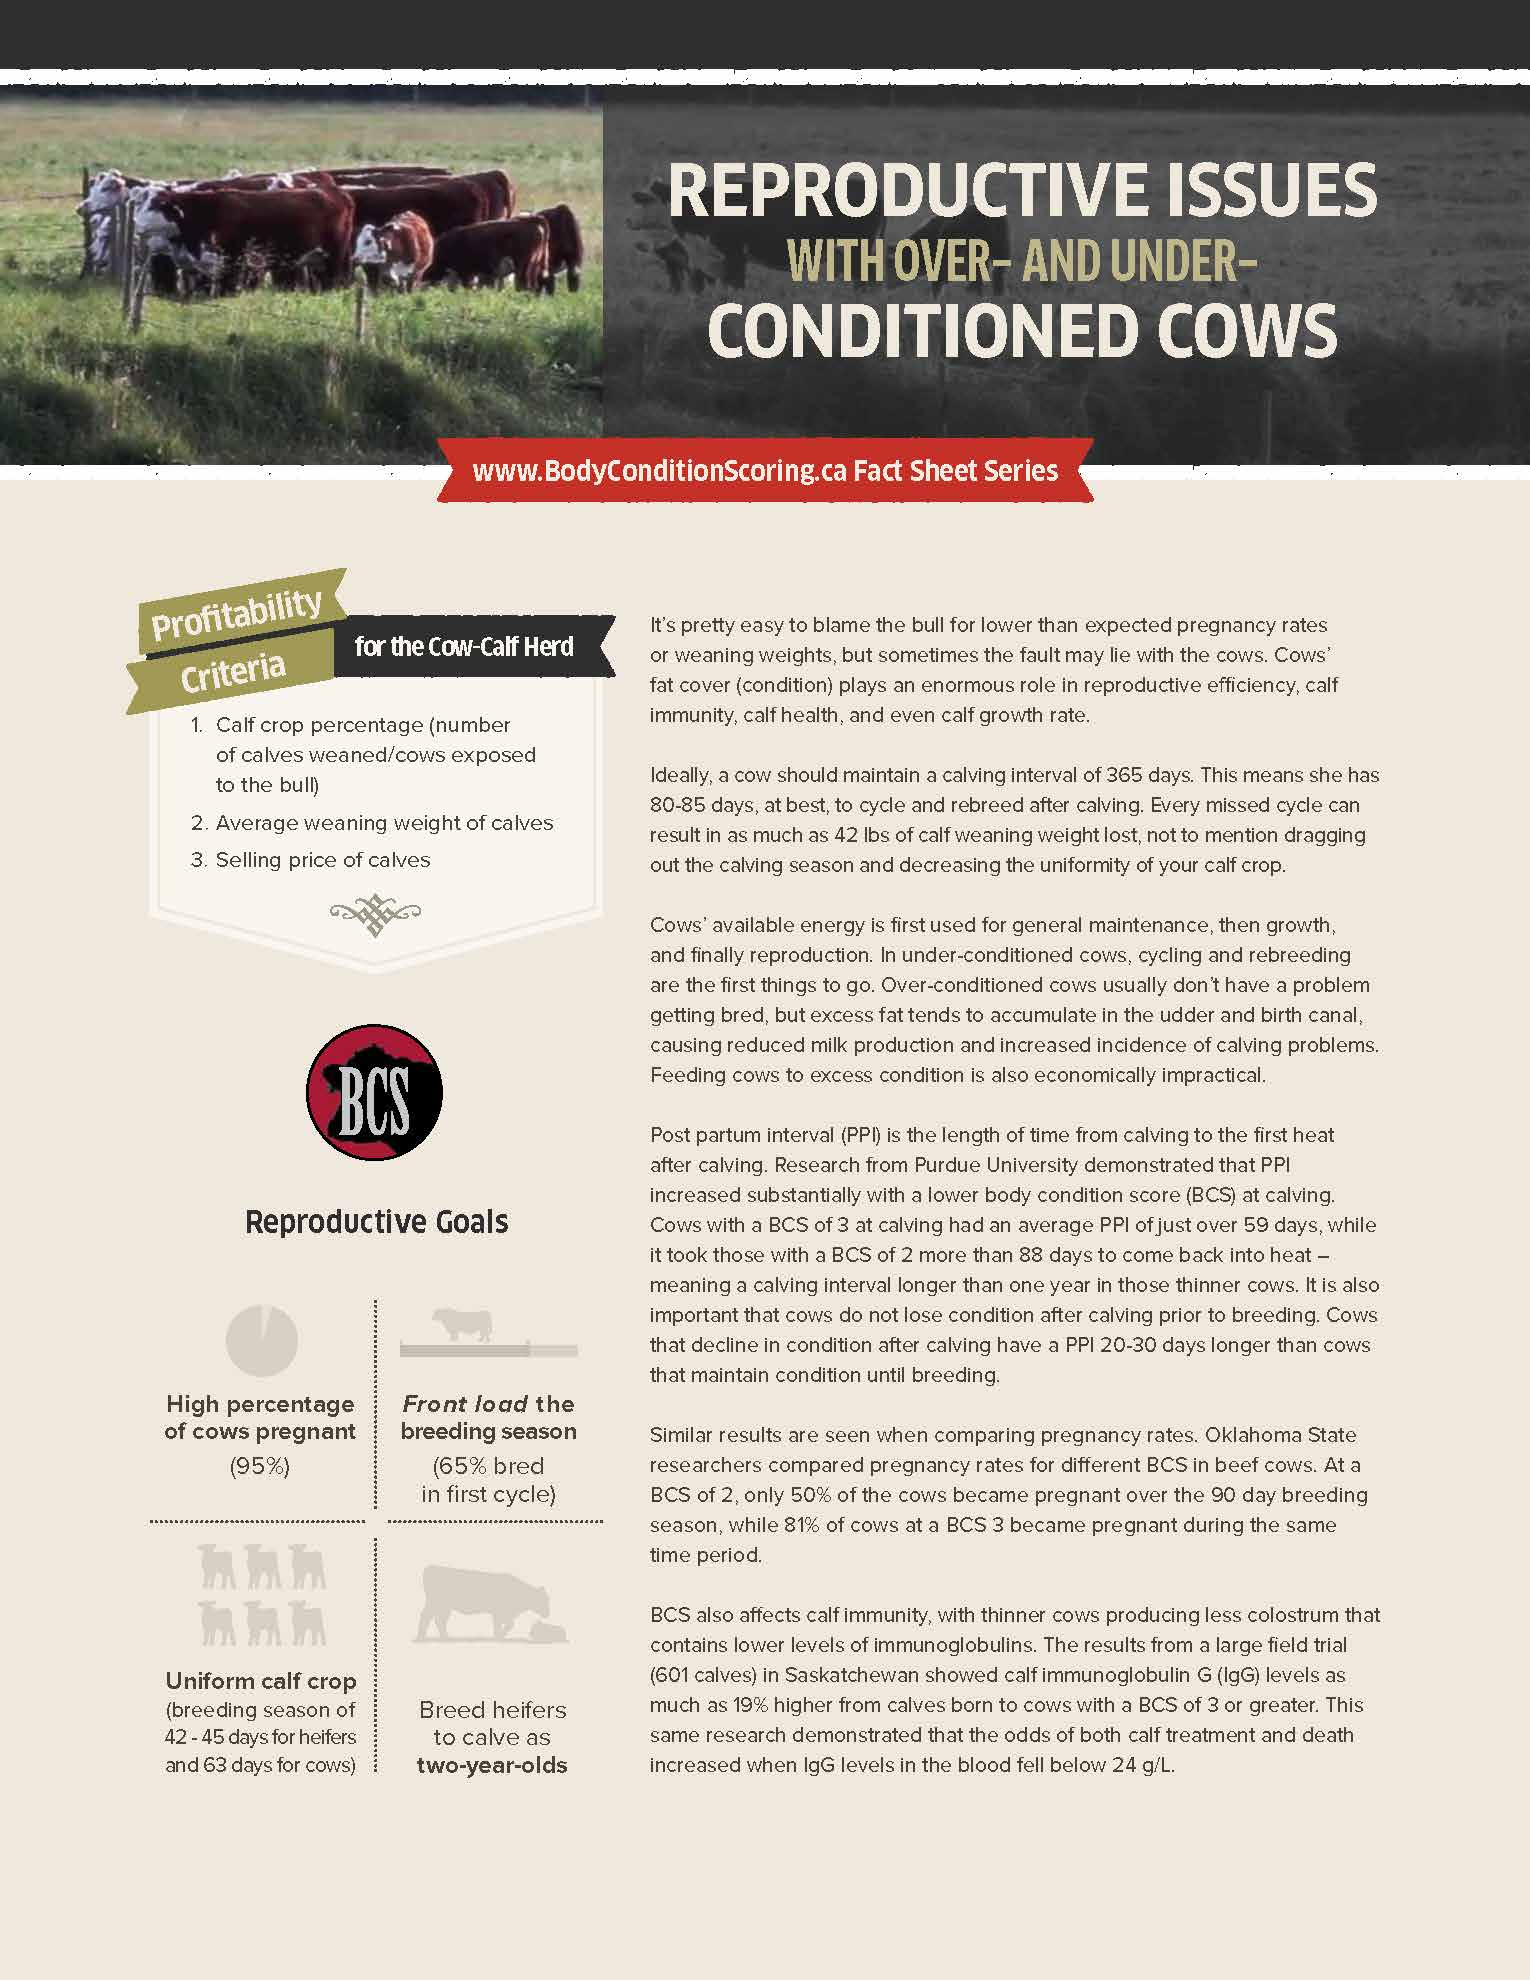 Fact sheet: Reproductive Issues with Overconditioned and Underconditioned Cows